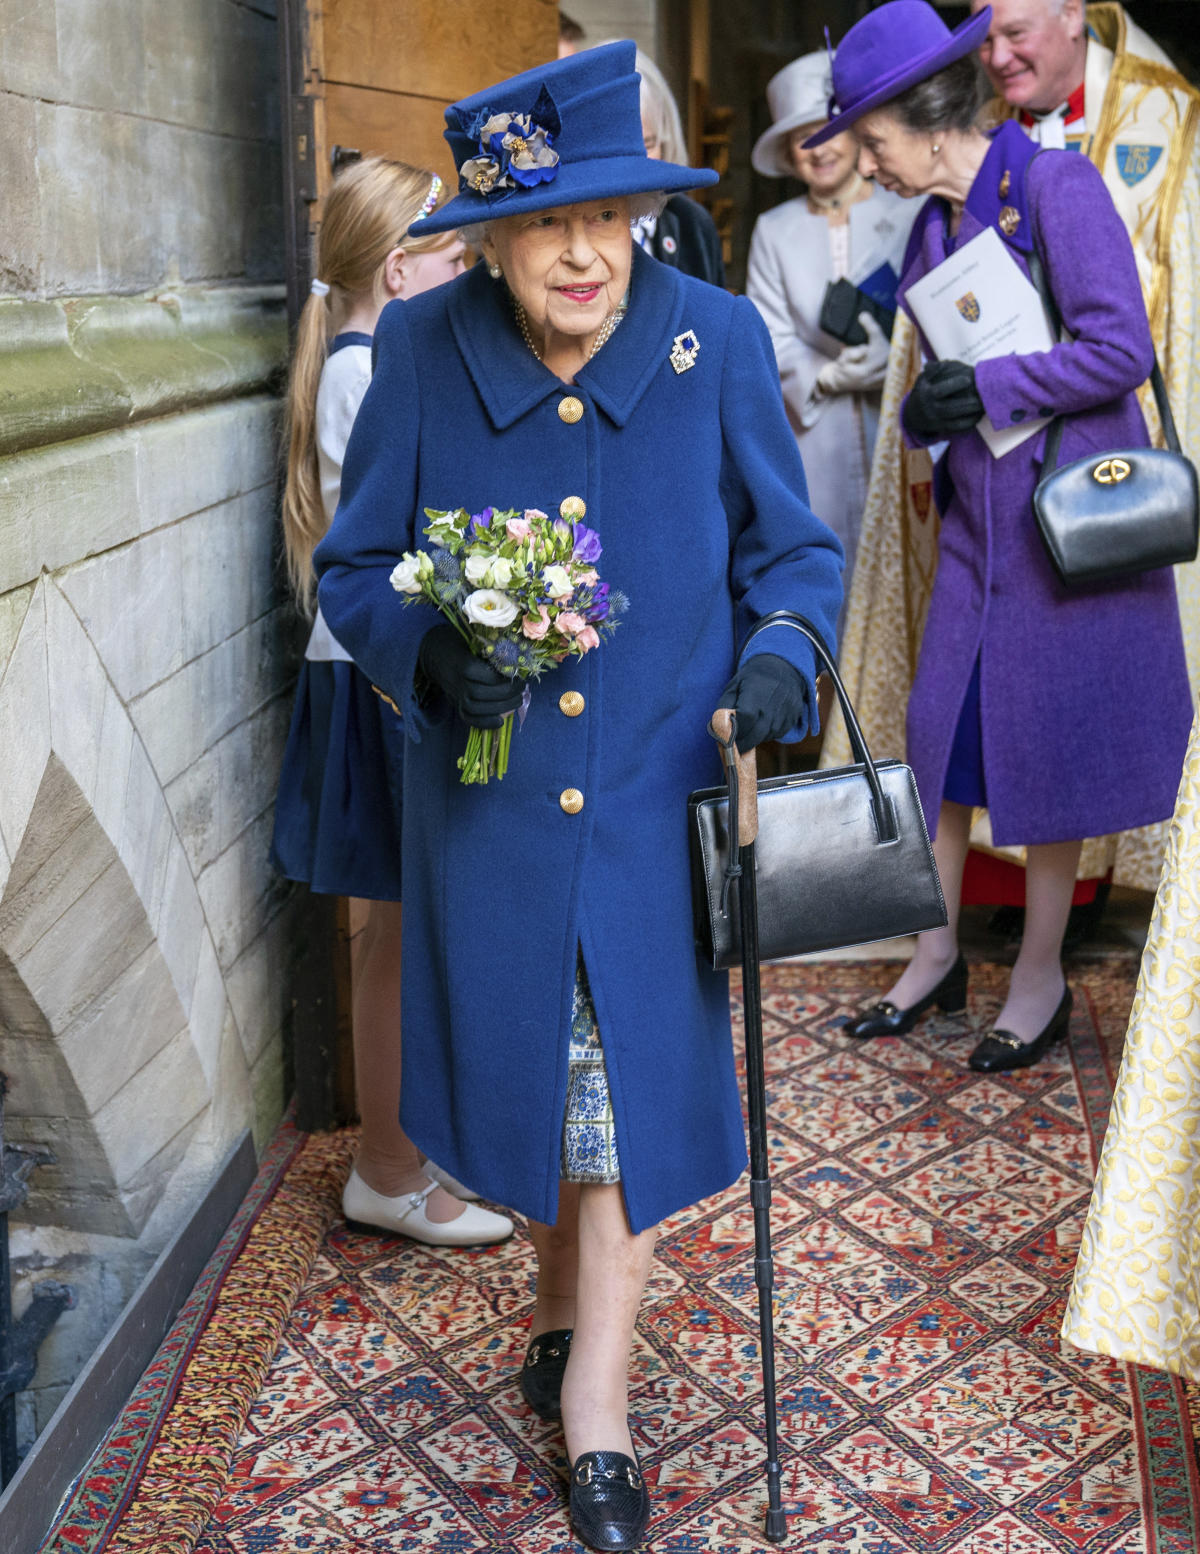 , Queen Elizabeth II uses cane to walk into Westminster Abbey, The Evepost National News